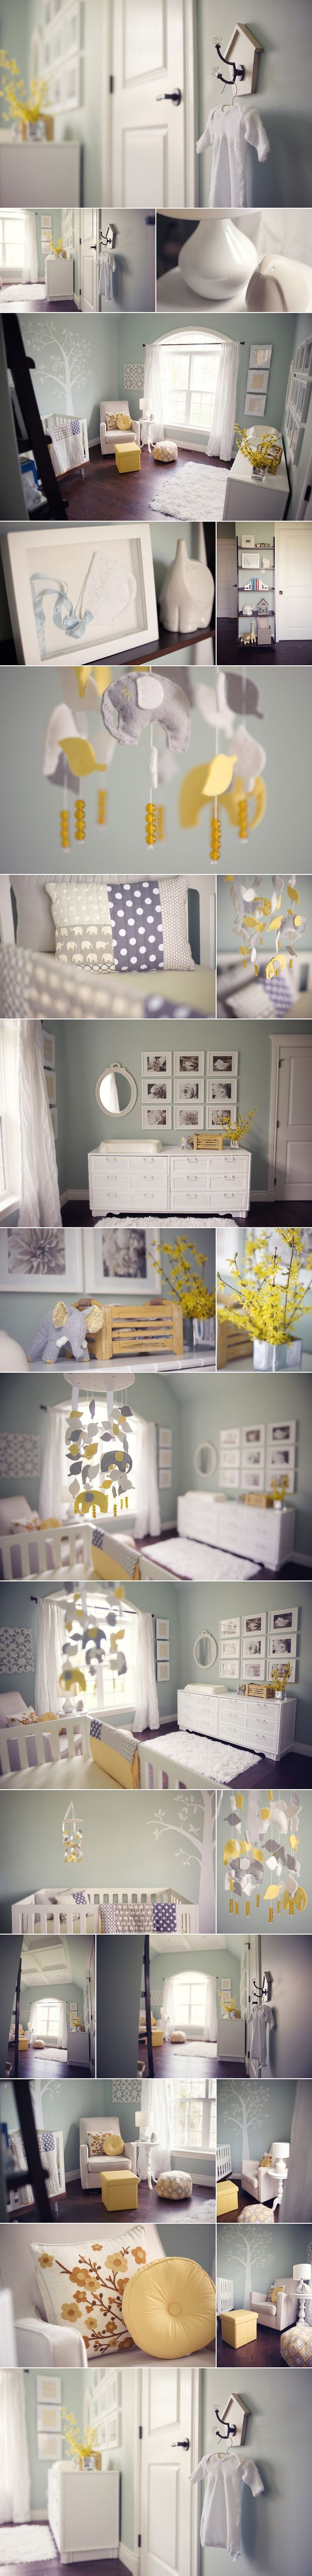 Baby rooms - love this color scheme